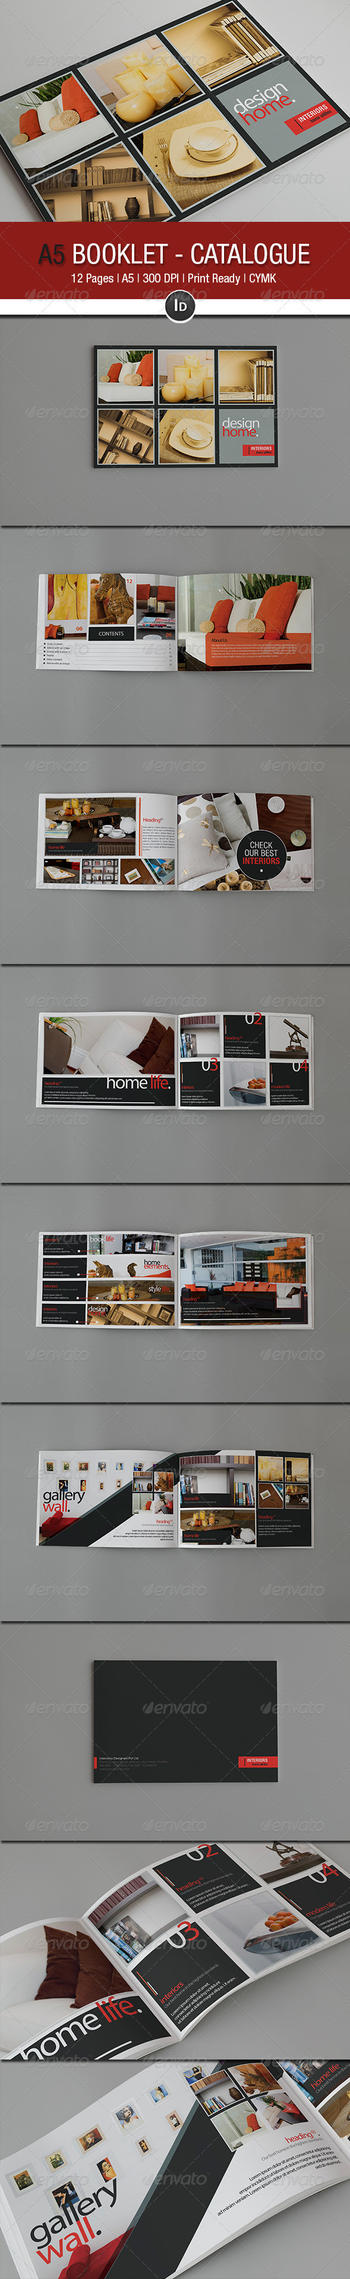 A5 Booklet - Catalogue V 2.0 by UnicoDesign